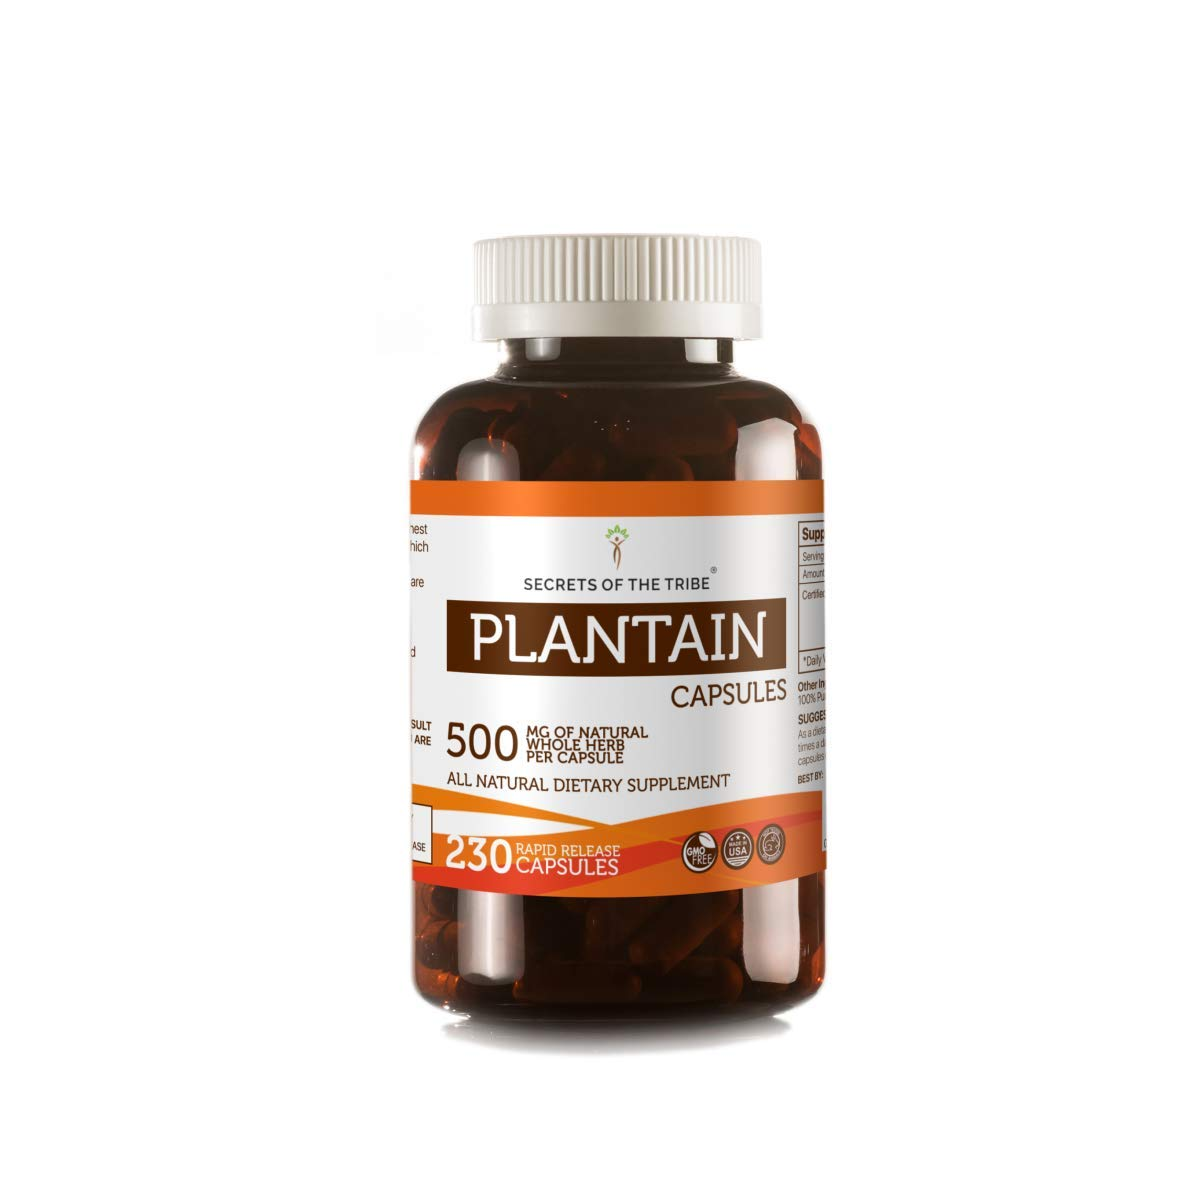 Plantain 230 Capsules, 500 mg, Organic Plantain (Plantago Major) Dried Leaf (230 Capsules) by Secrets of the Tribe